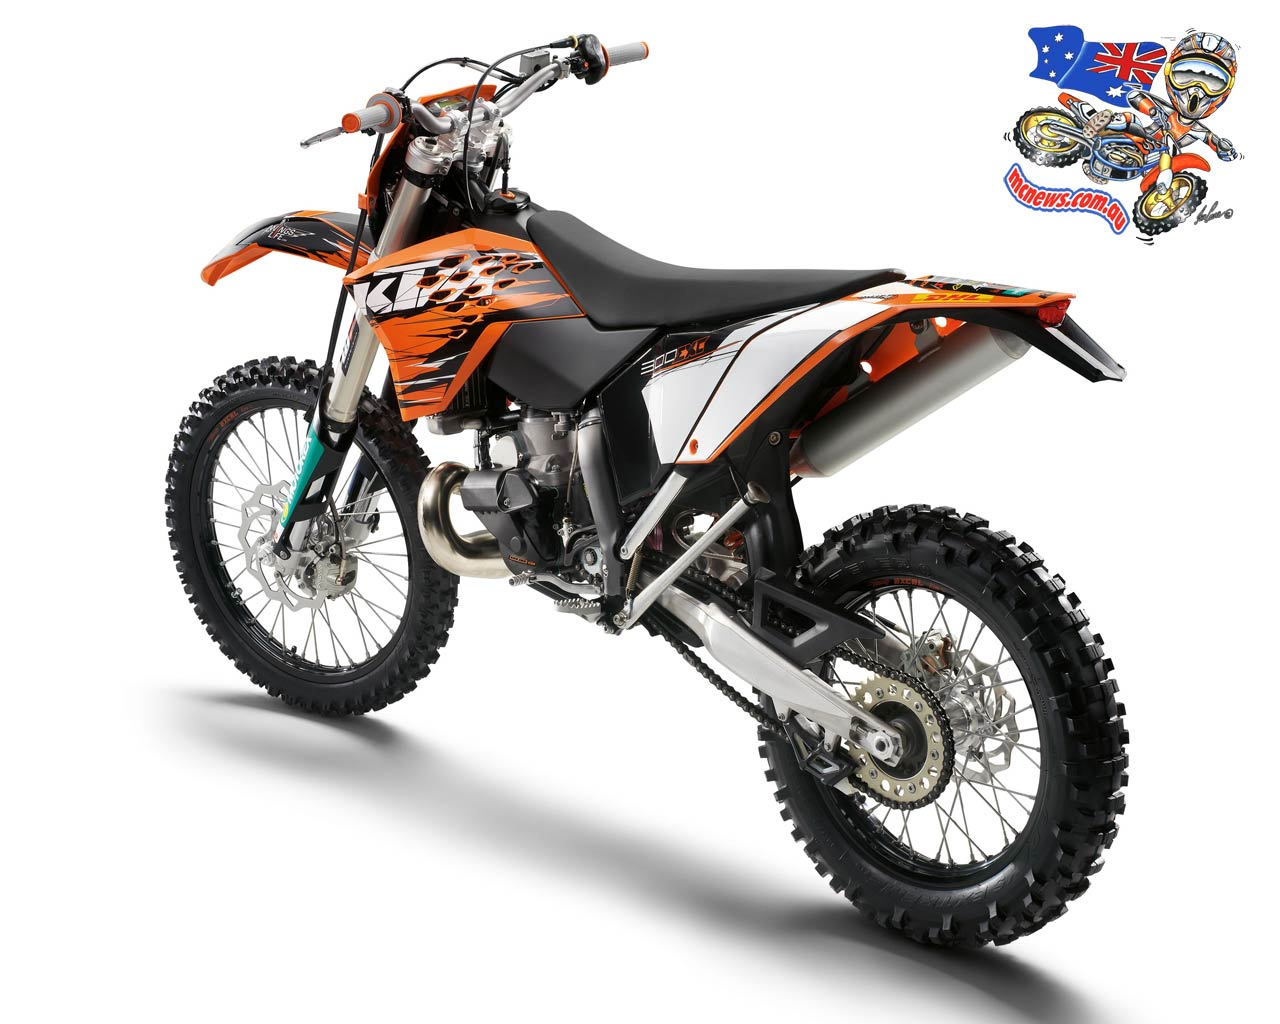 2010 ktm 300 exc pics specs and information. Black Bedroom Furniture Sets. Home Design Ideas